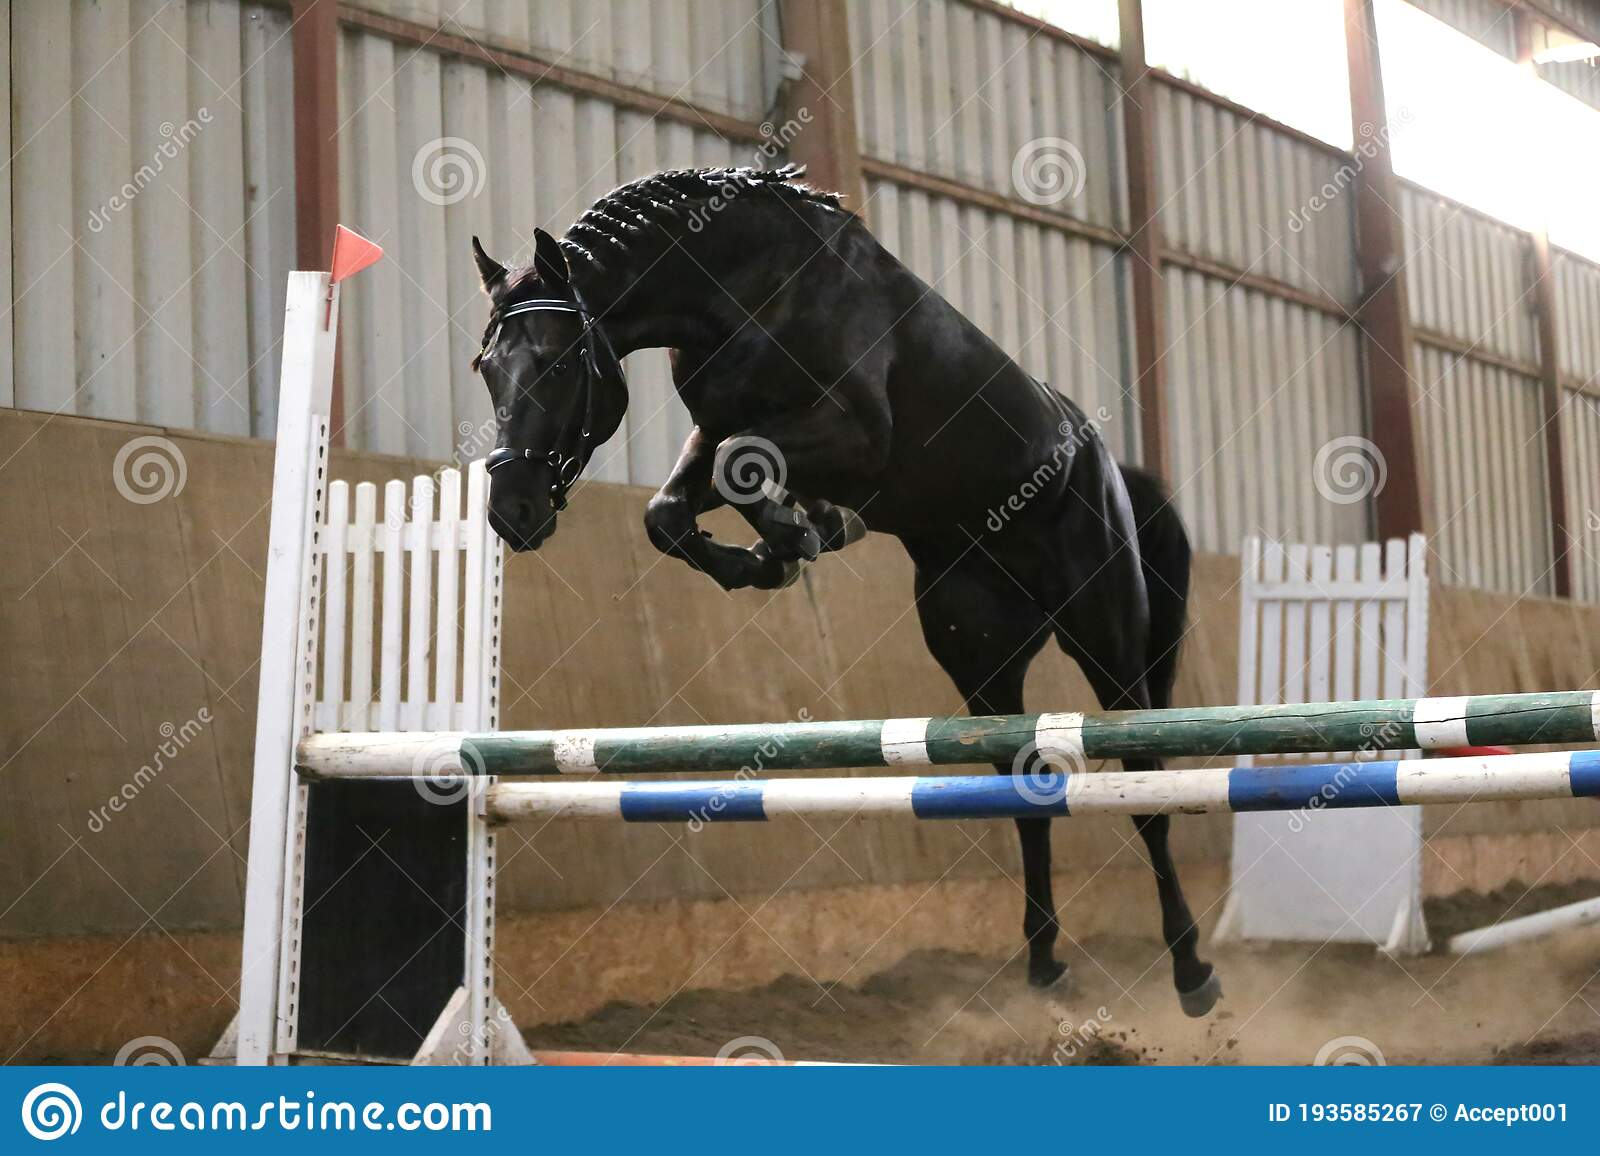 Thoroughbred Young Sport Horse Jumping Over Obstacles In The Arena Stock Image Image Of Activity Foal 193585267